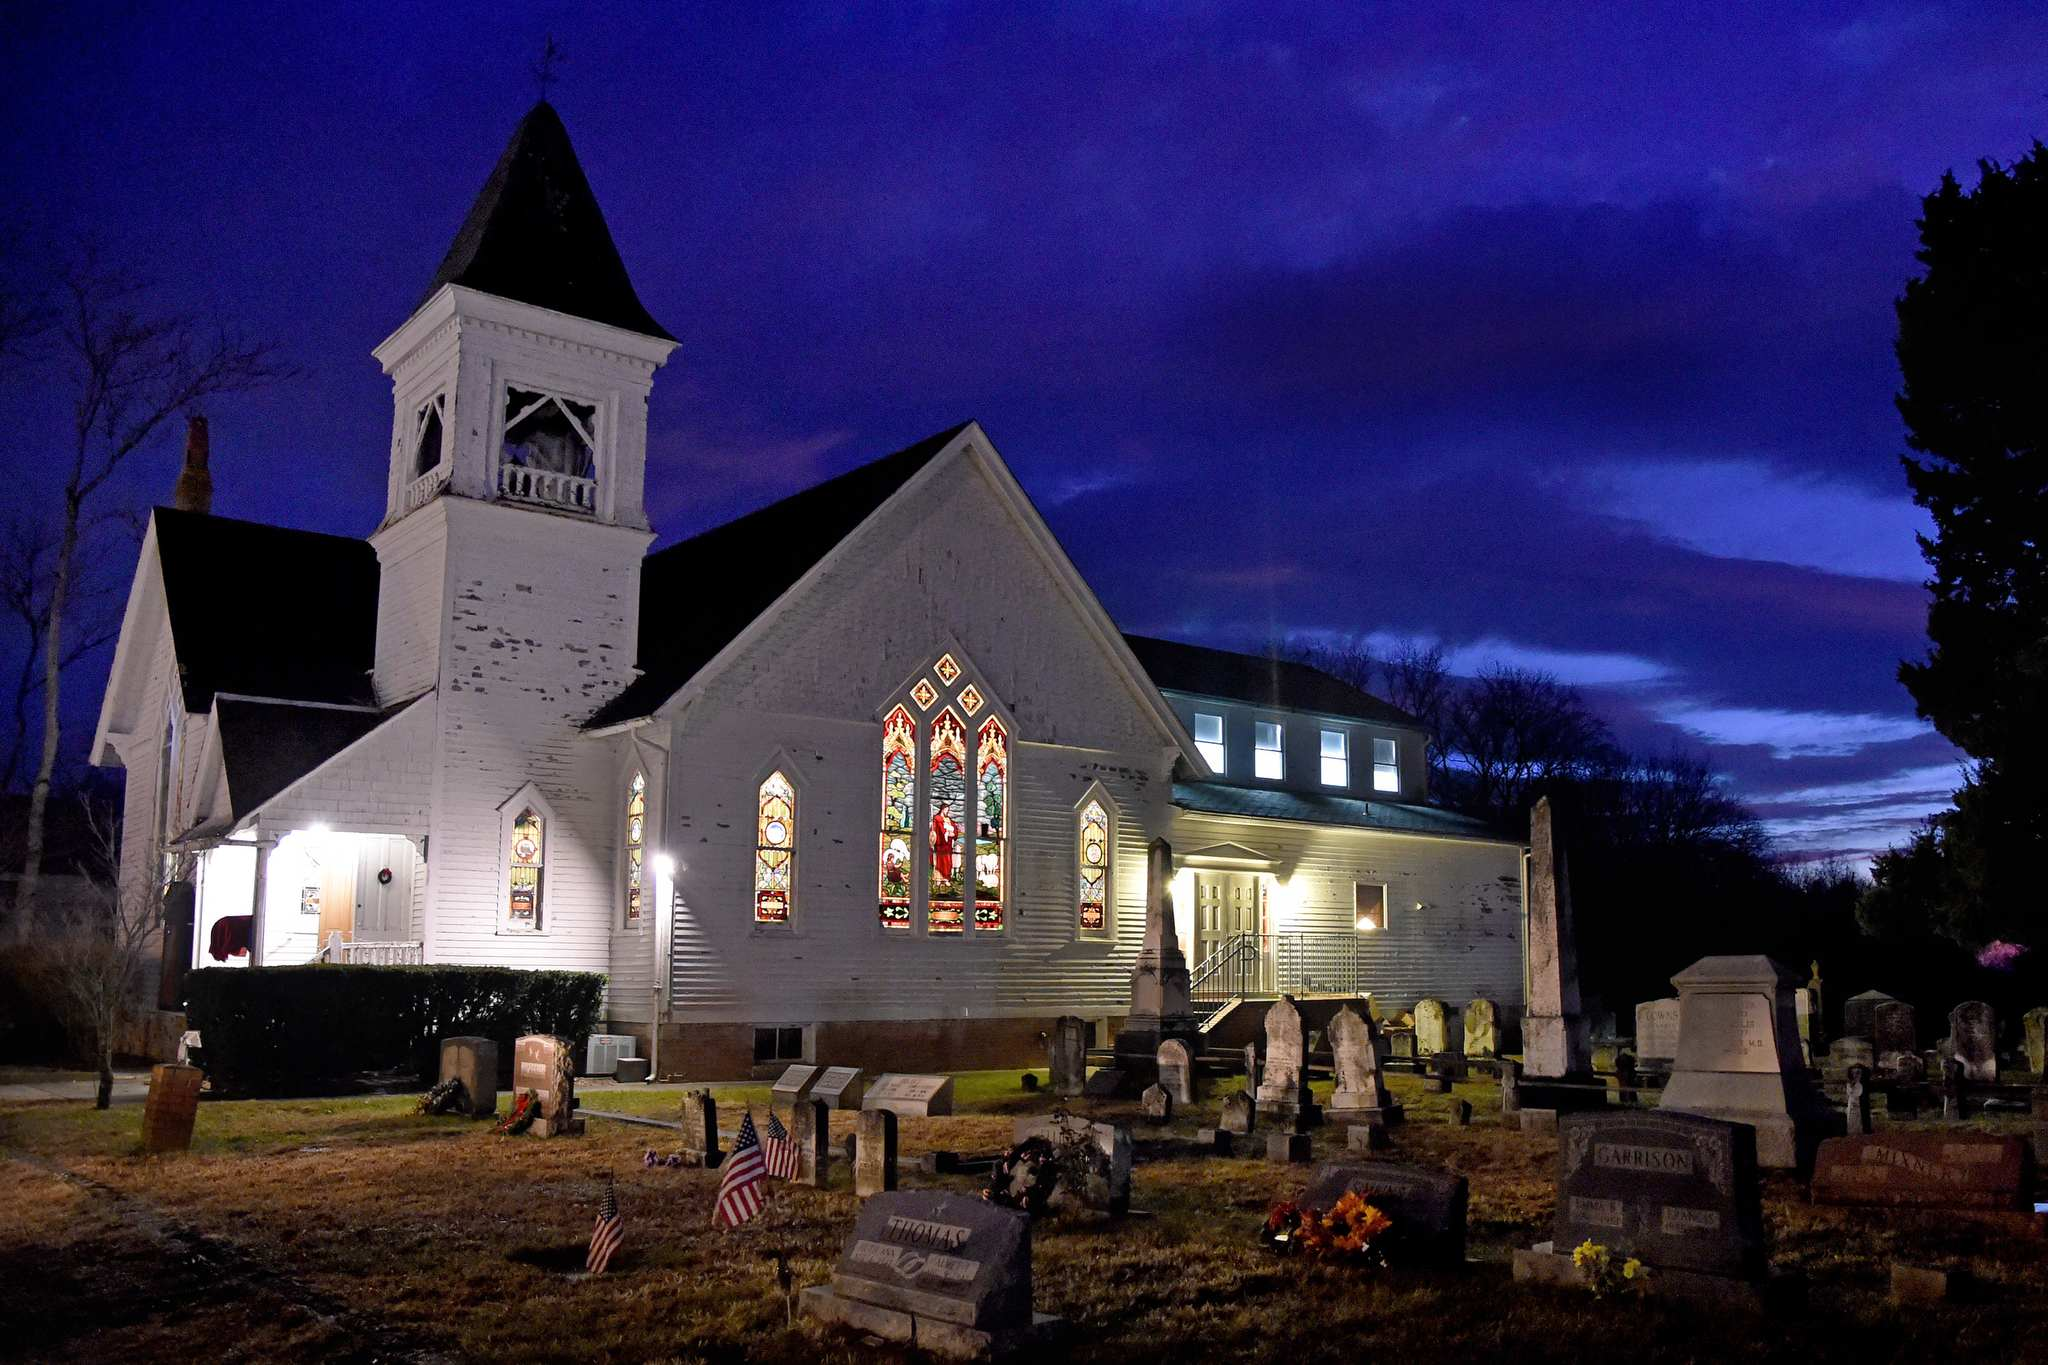 Indie film actor Will Keenan purchased the church formerly known as Goshen United Methodist Church. He is transforming it into a residence, spiritual oasis, and performance space named for his recently deceased mother.